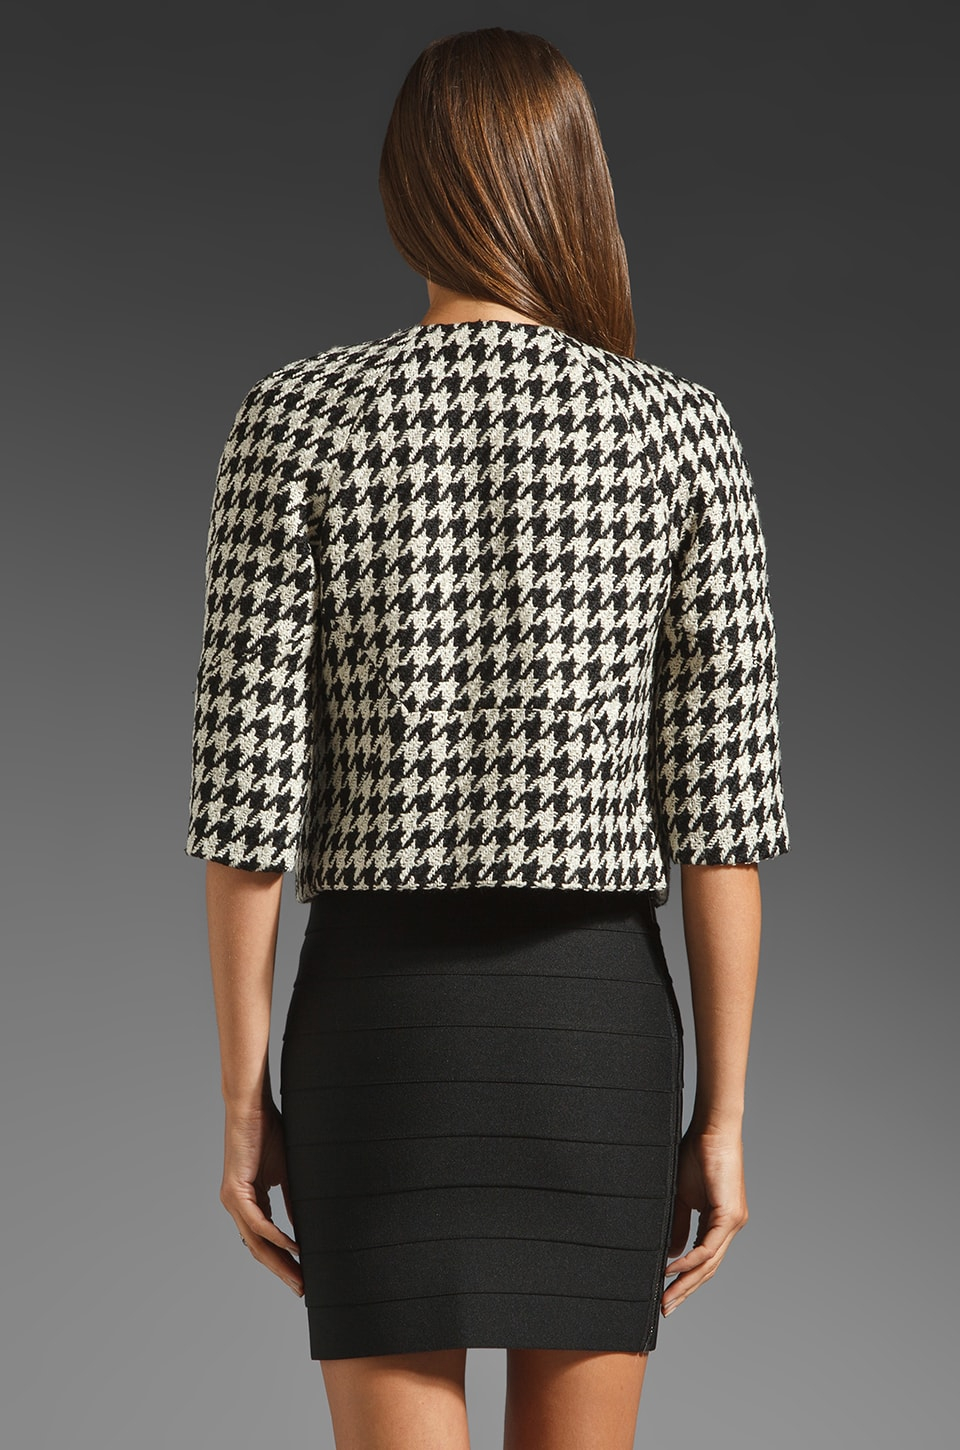 Black Halo Piccoli Crop Jacket Houndstooth in Black/White